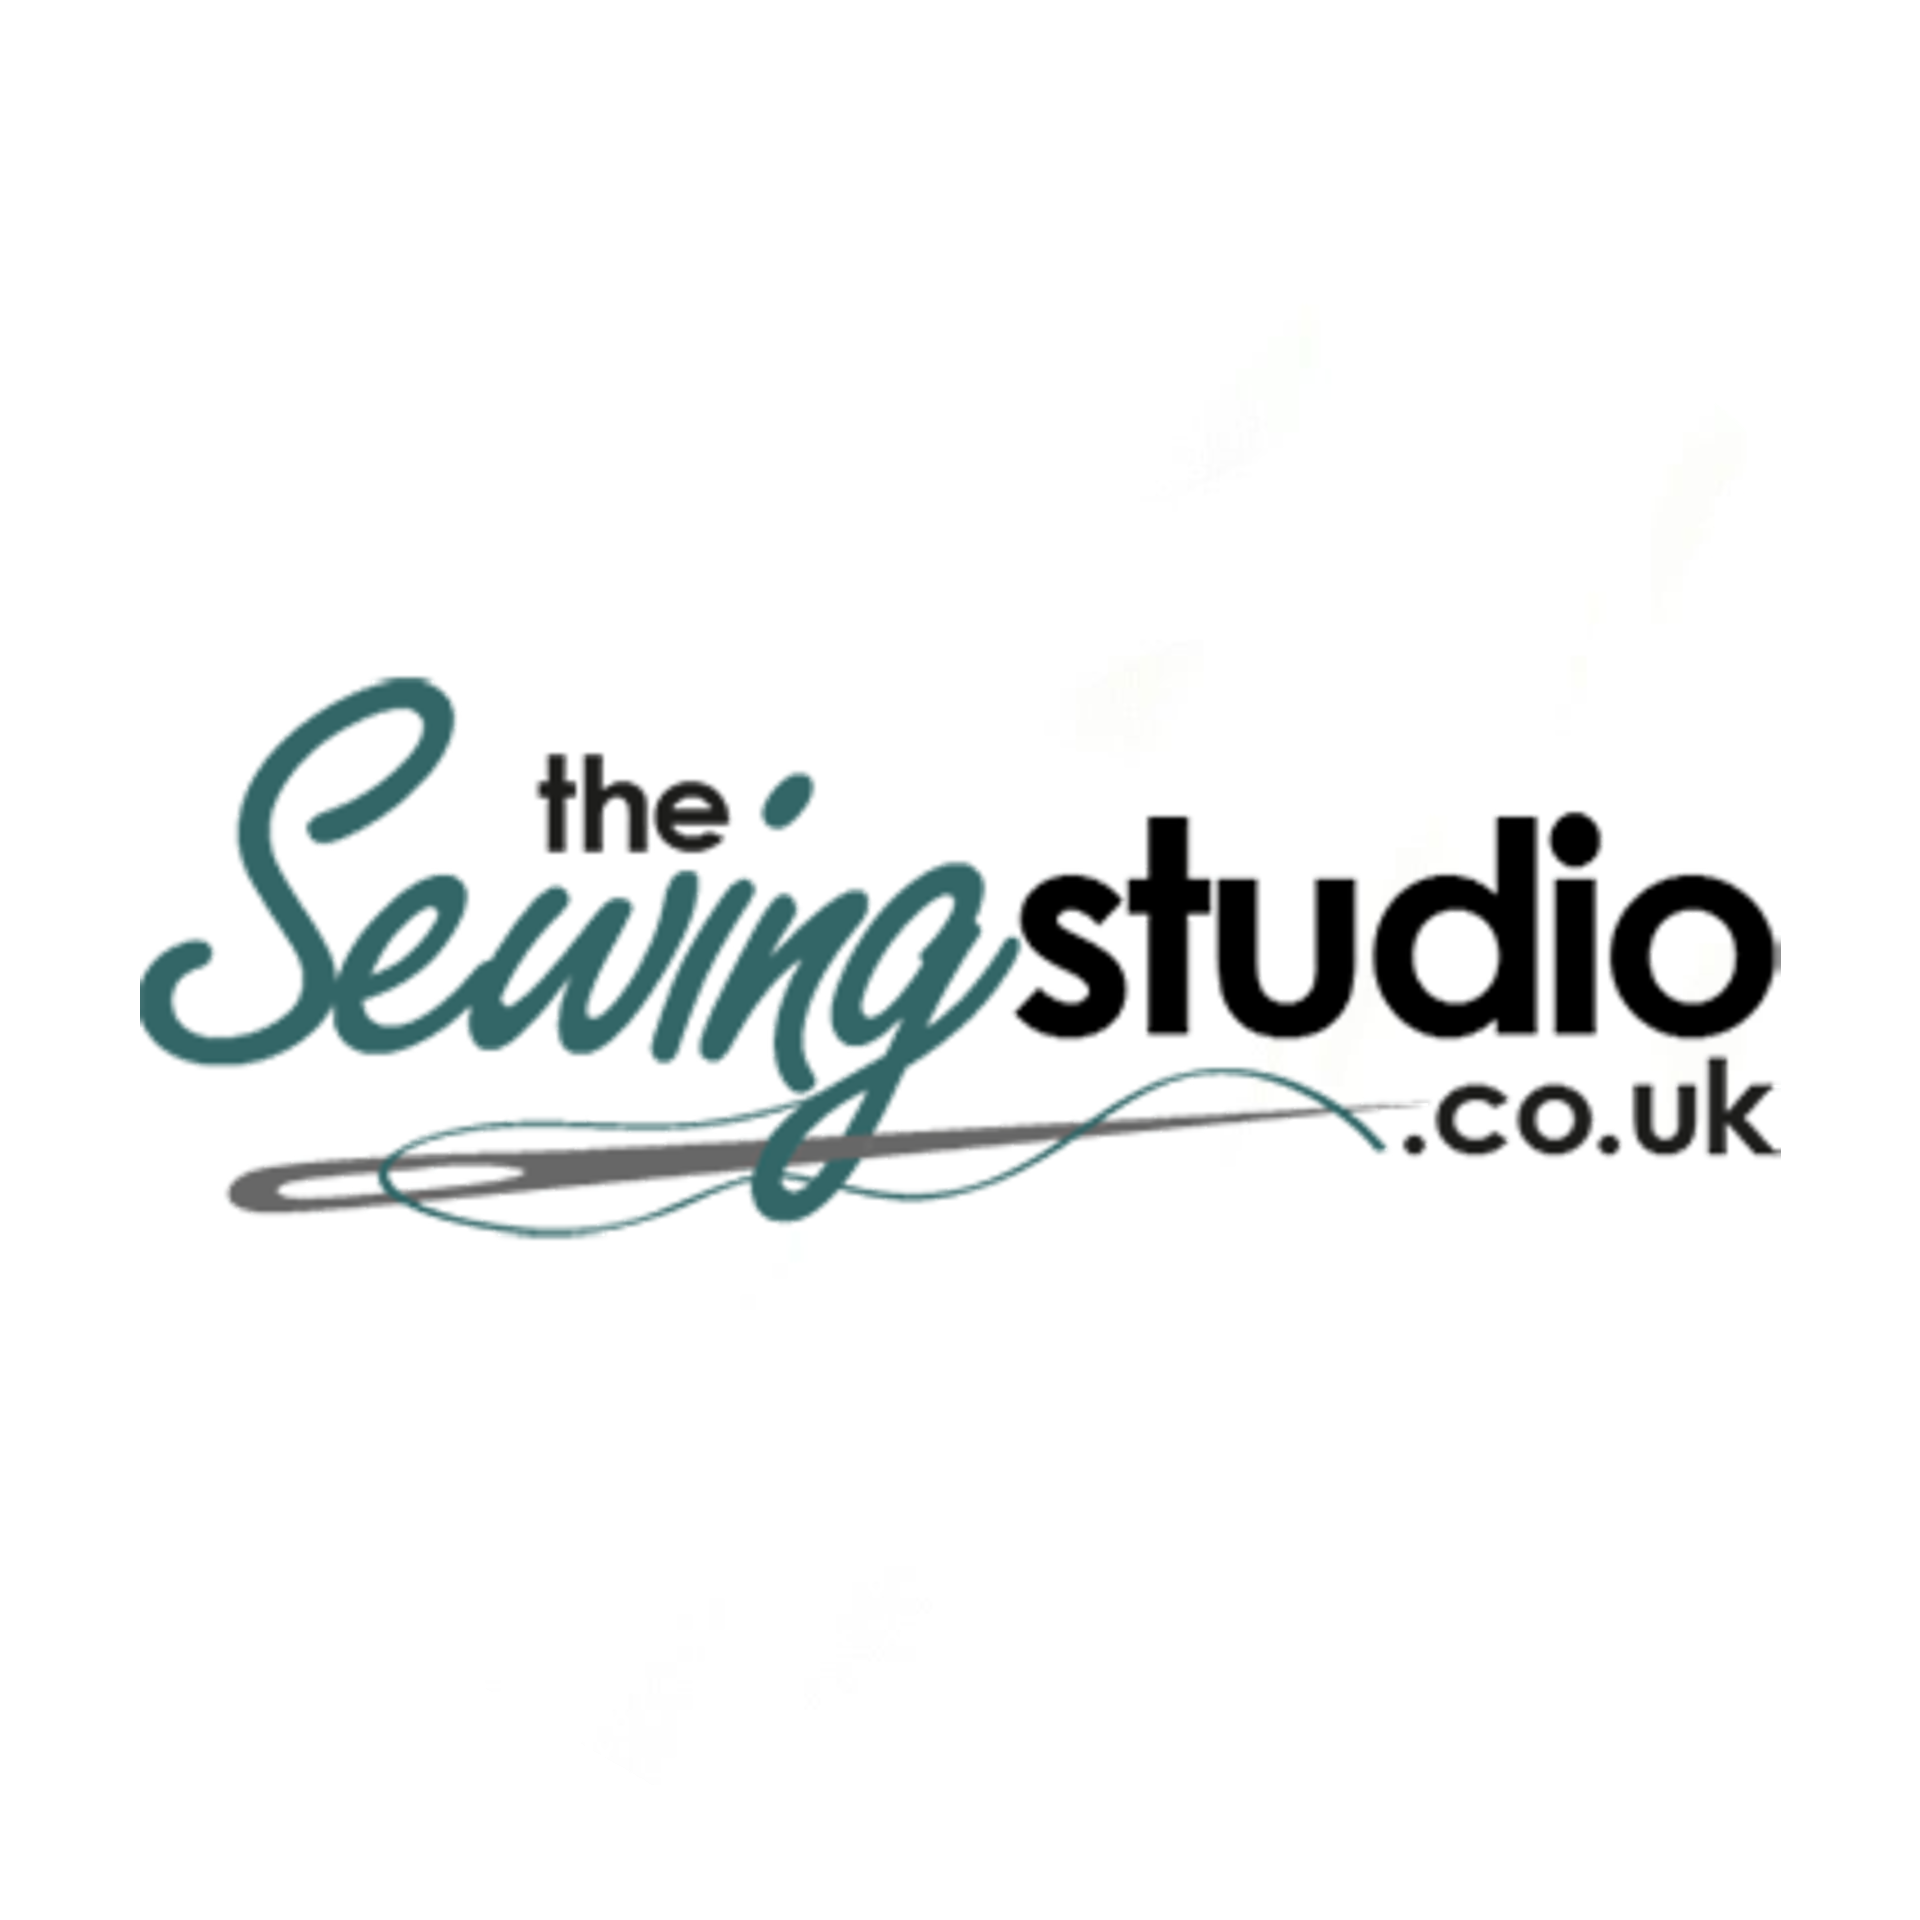 the sewing studio